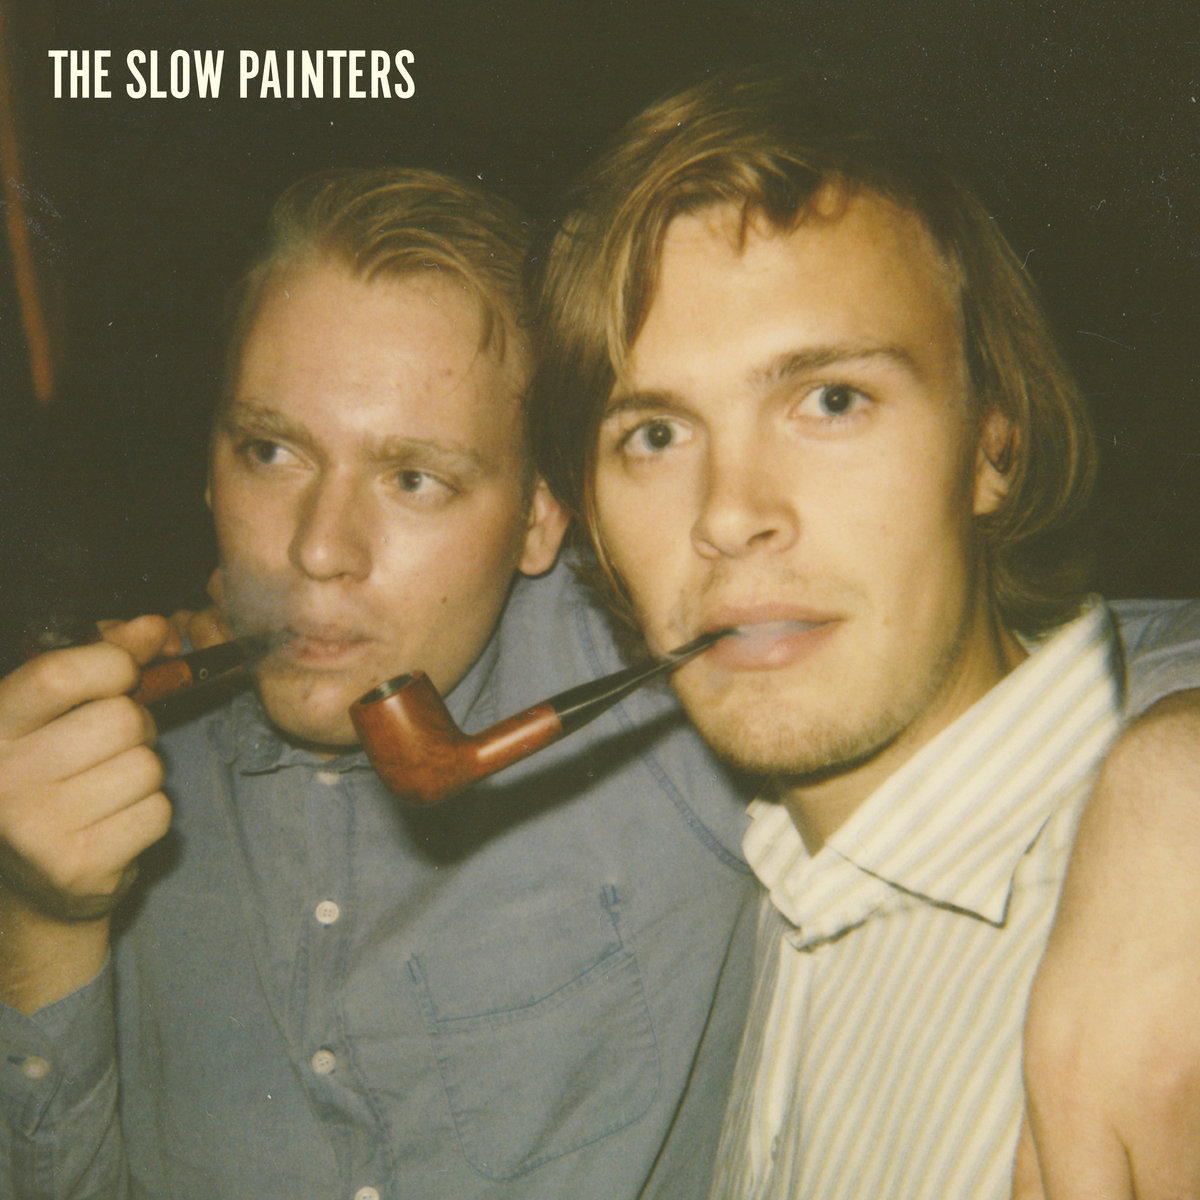 The Slow Painters – The Slow Painters